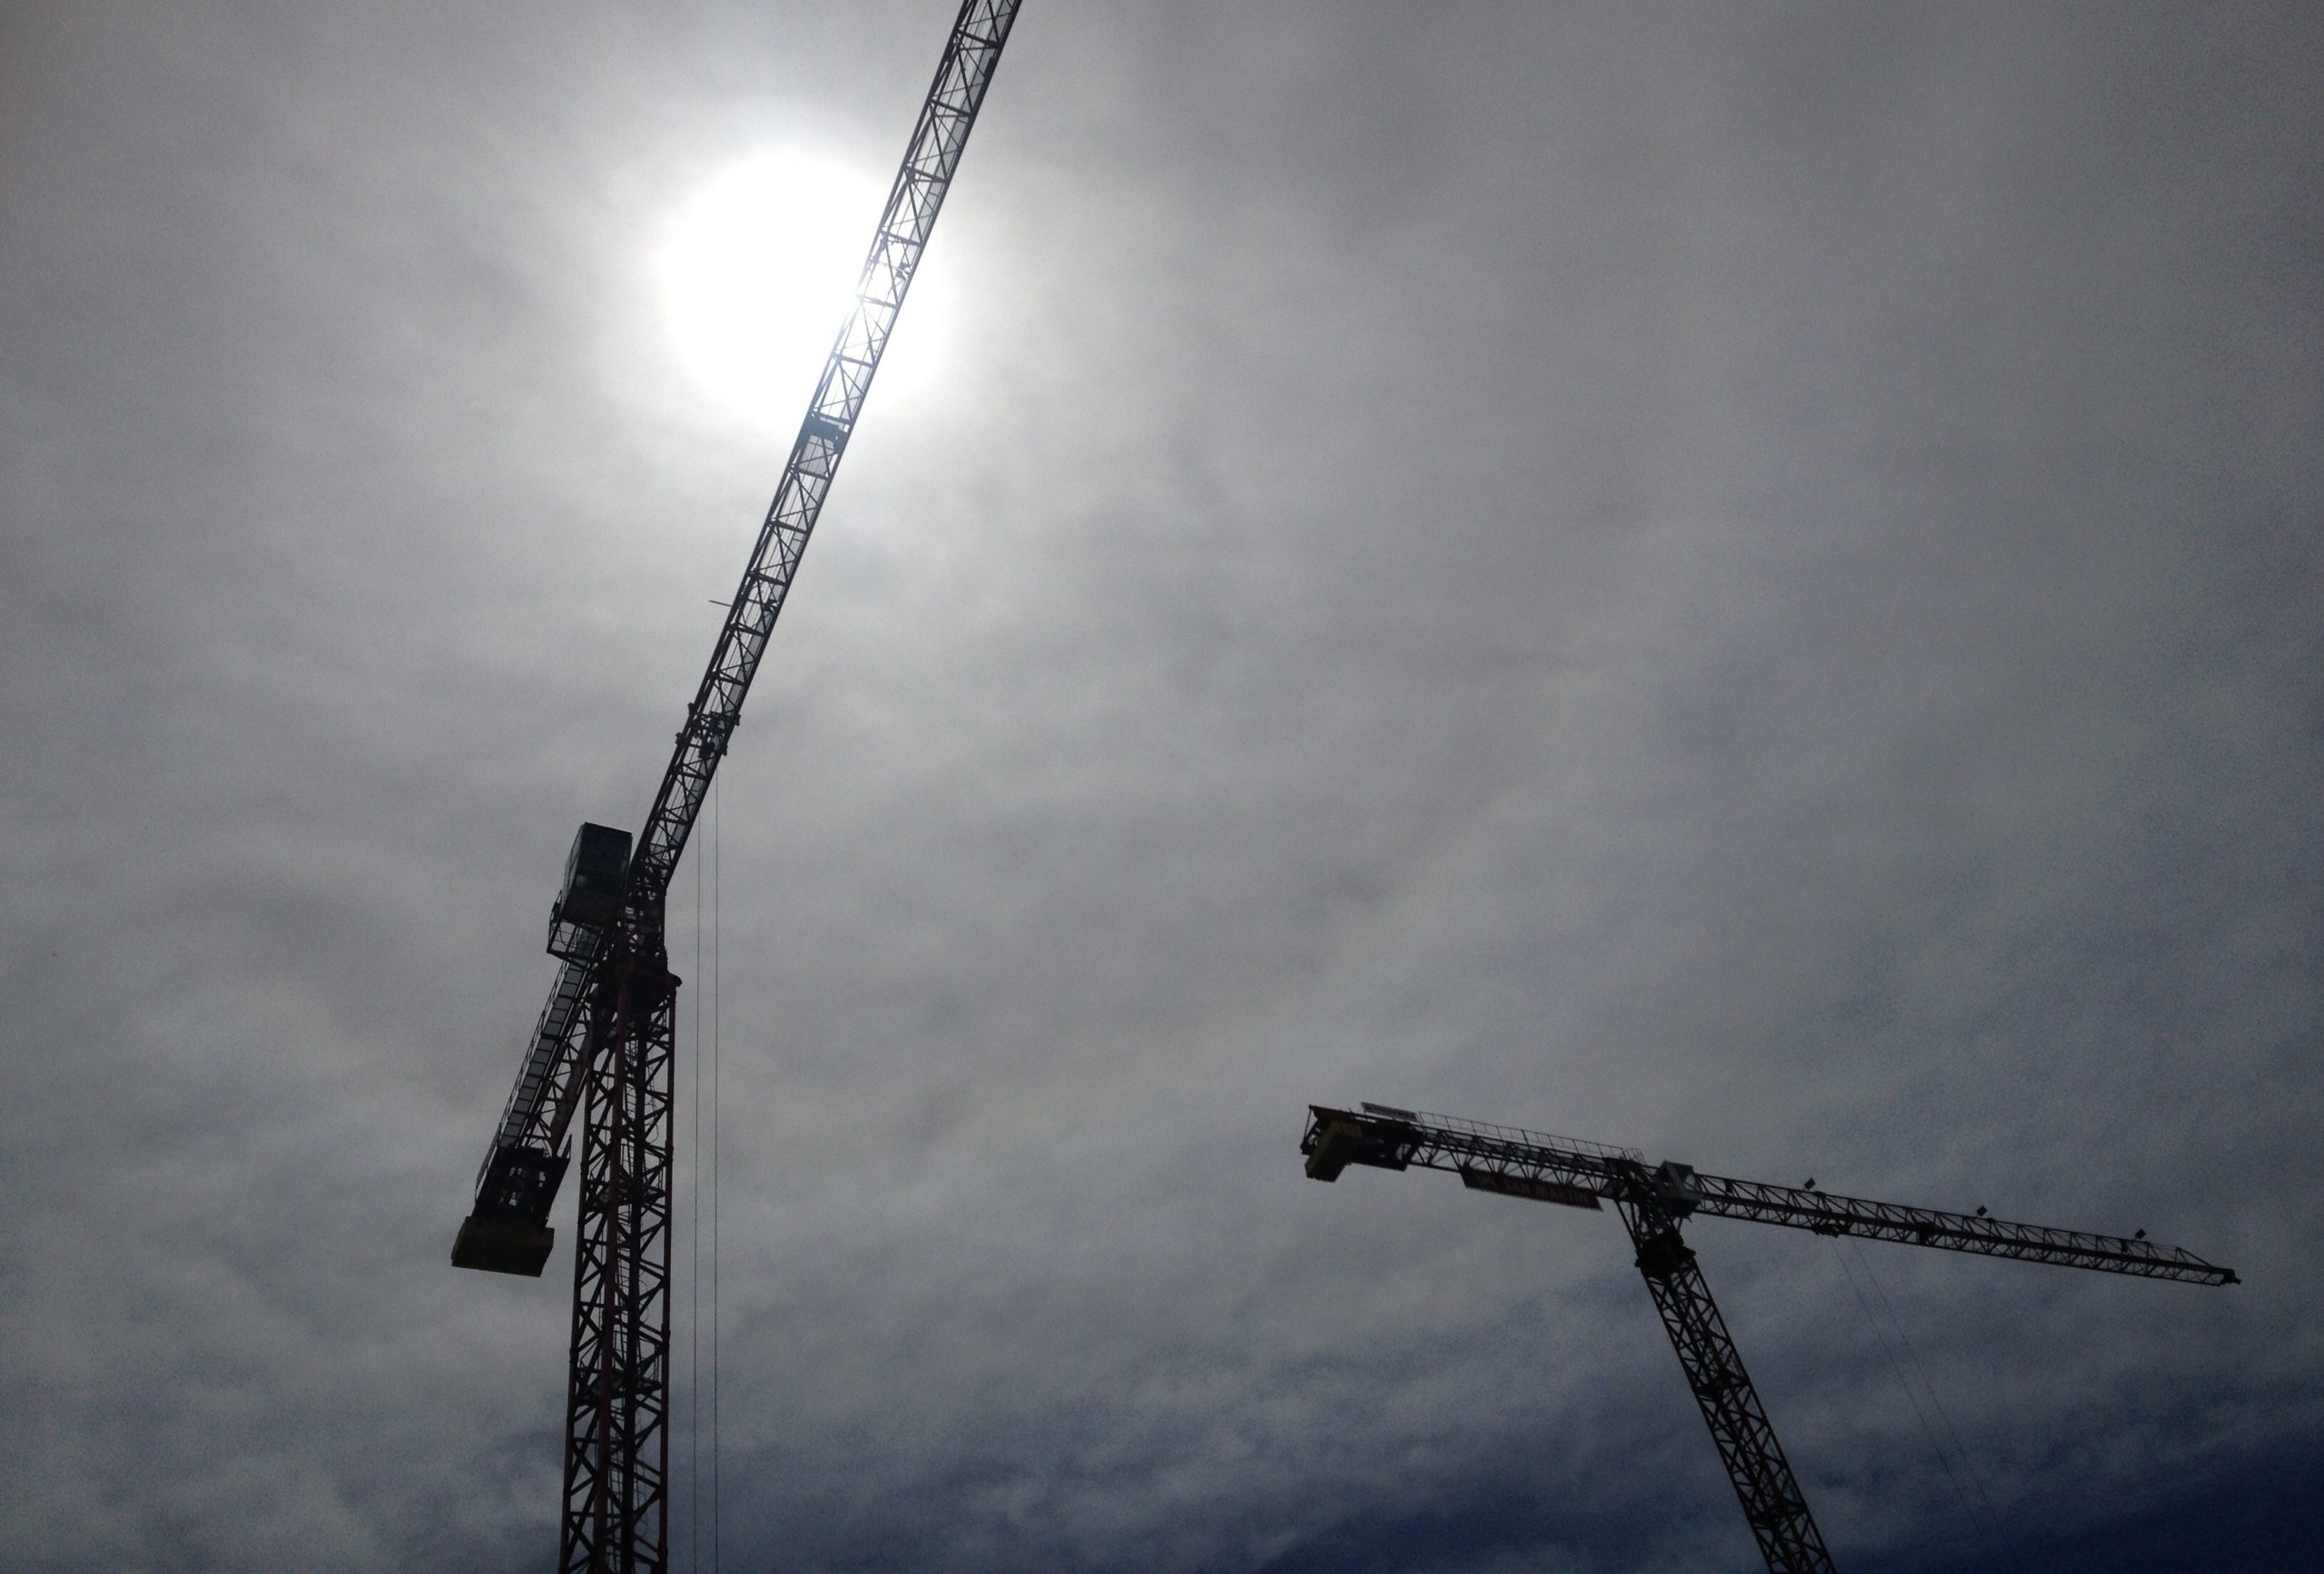 Construction cranes against the sky